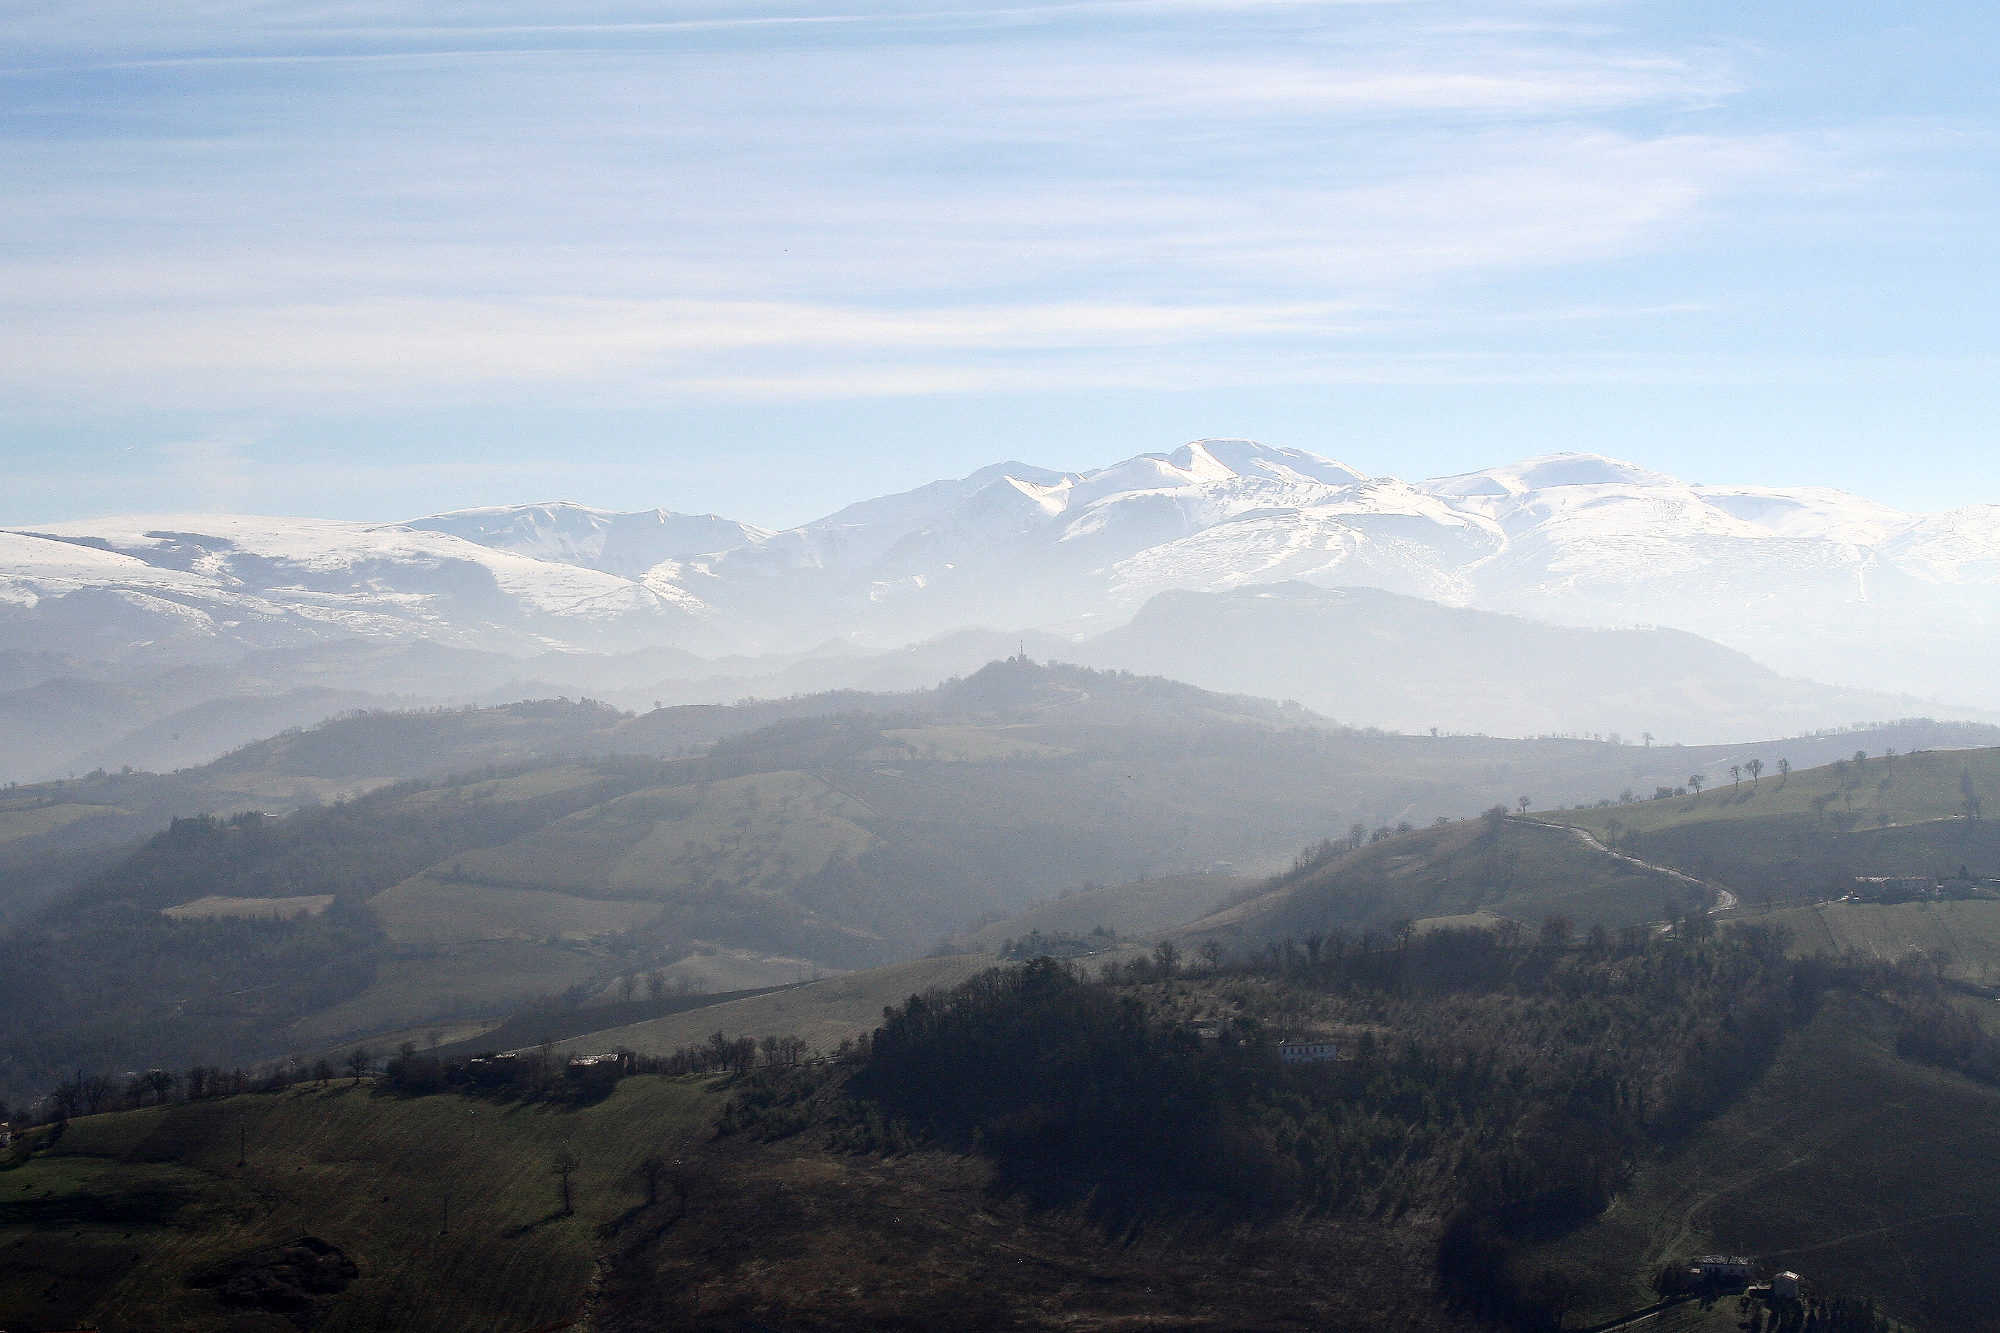 camerino view to palomba, sentino & the sibillini